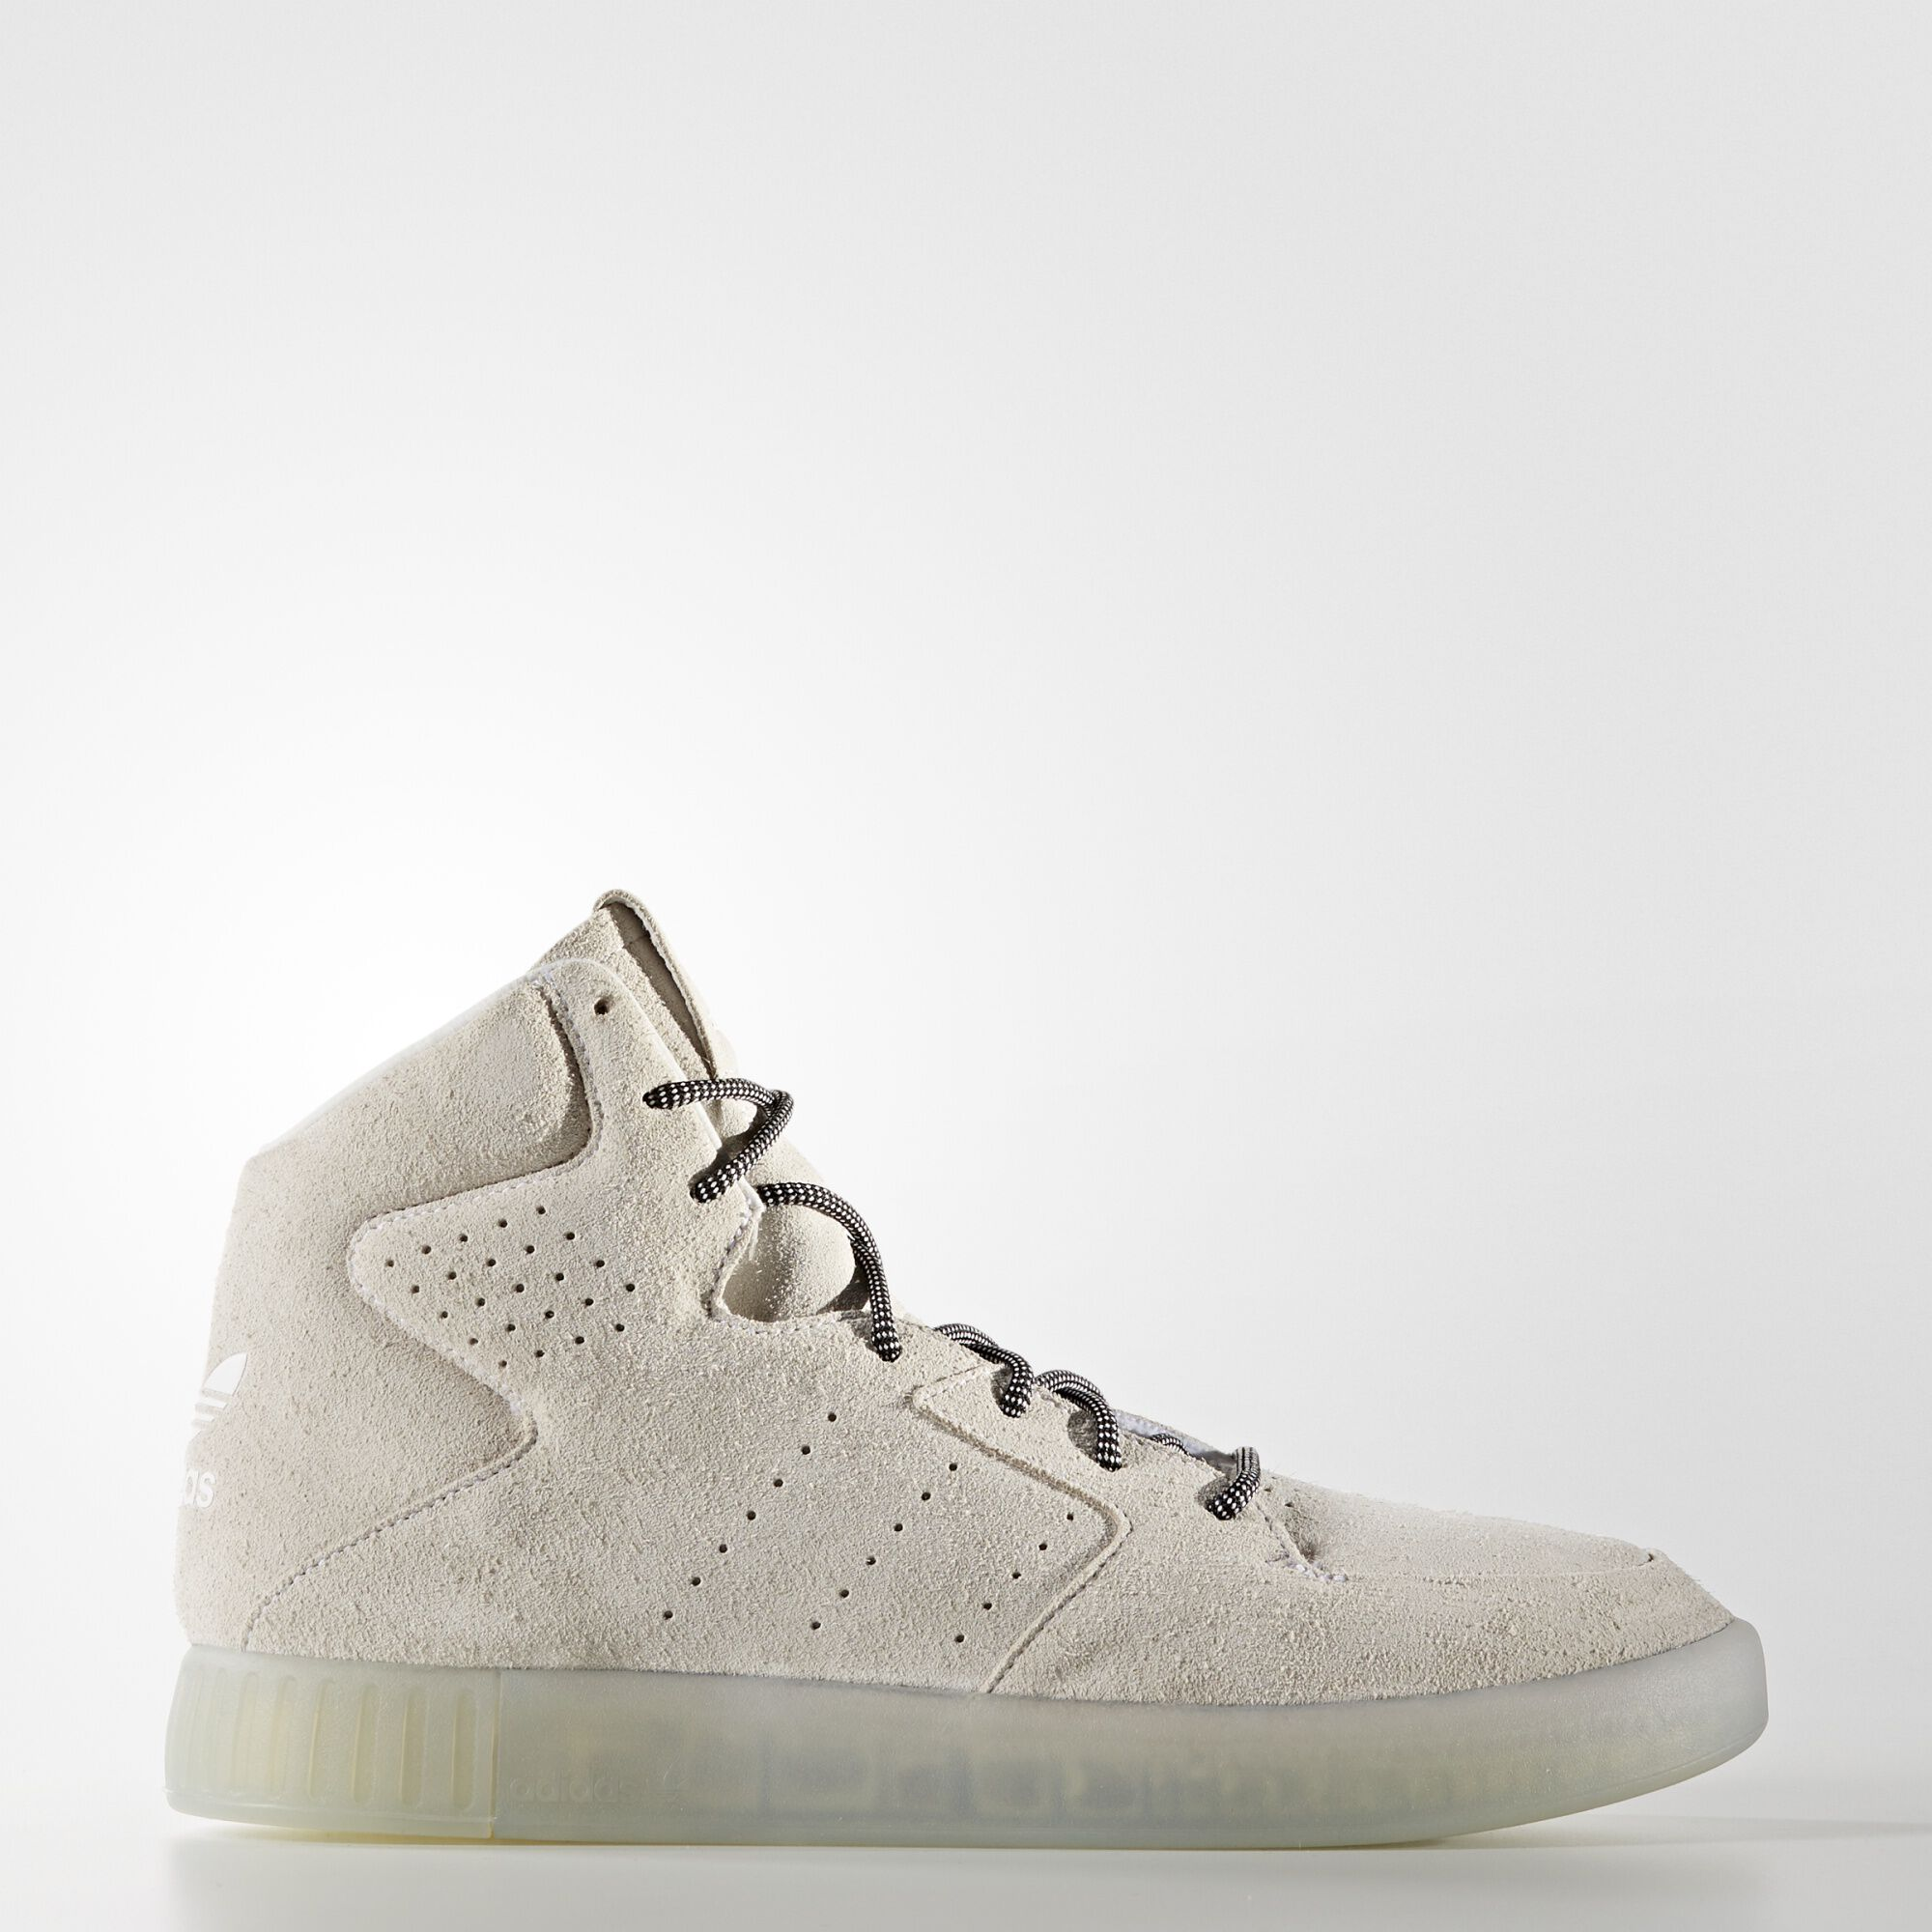 Adidas Originals Tubular Invader Strap JD Sports